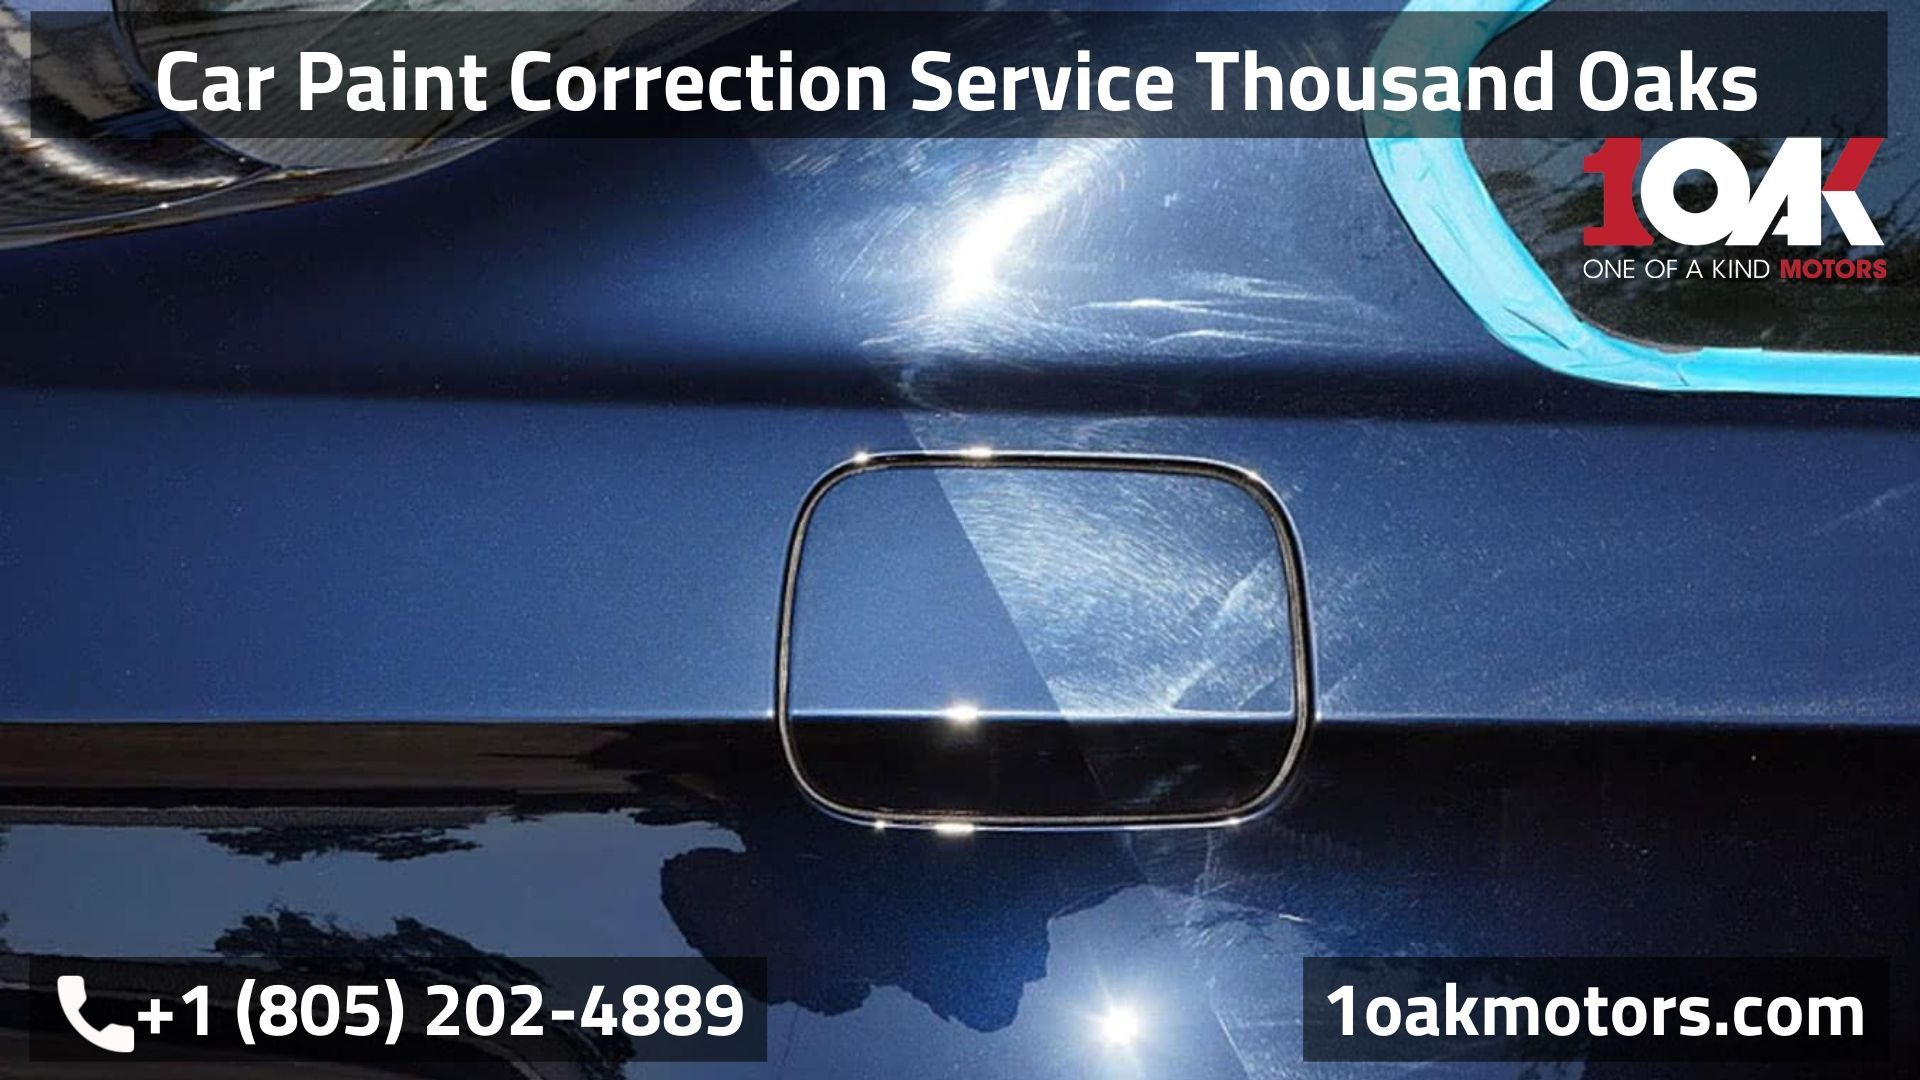 Paint Correction Service Thousand Oaks in 2020 Car